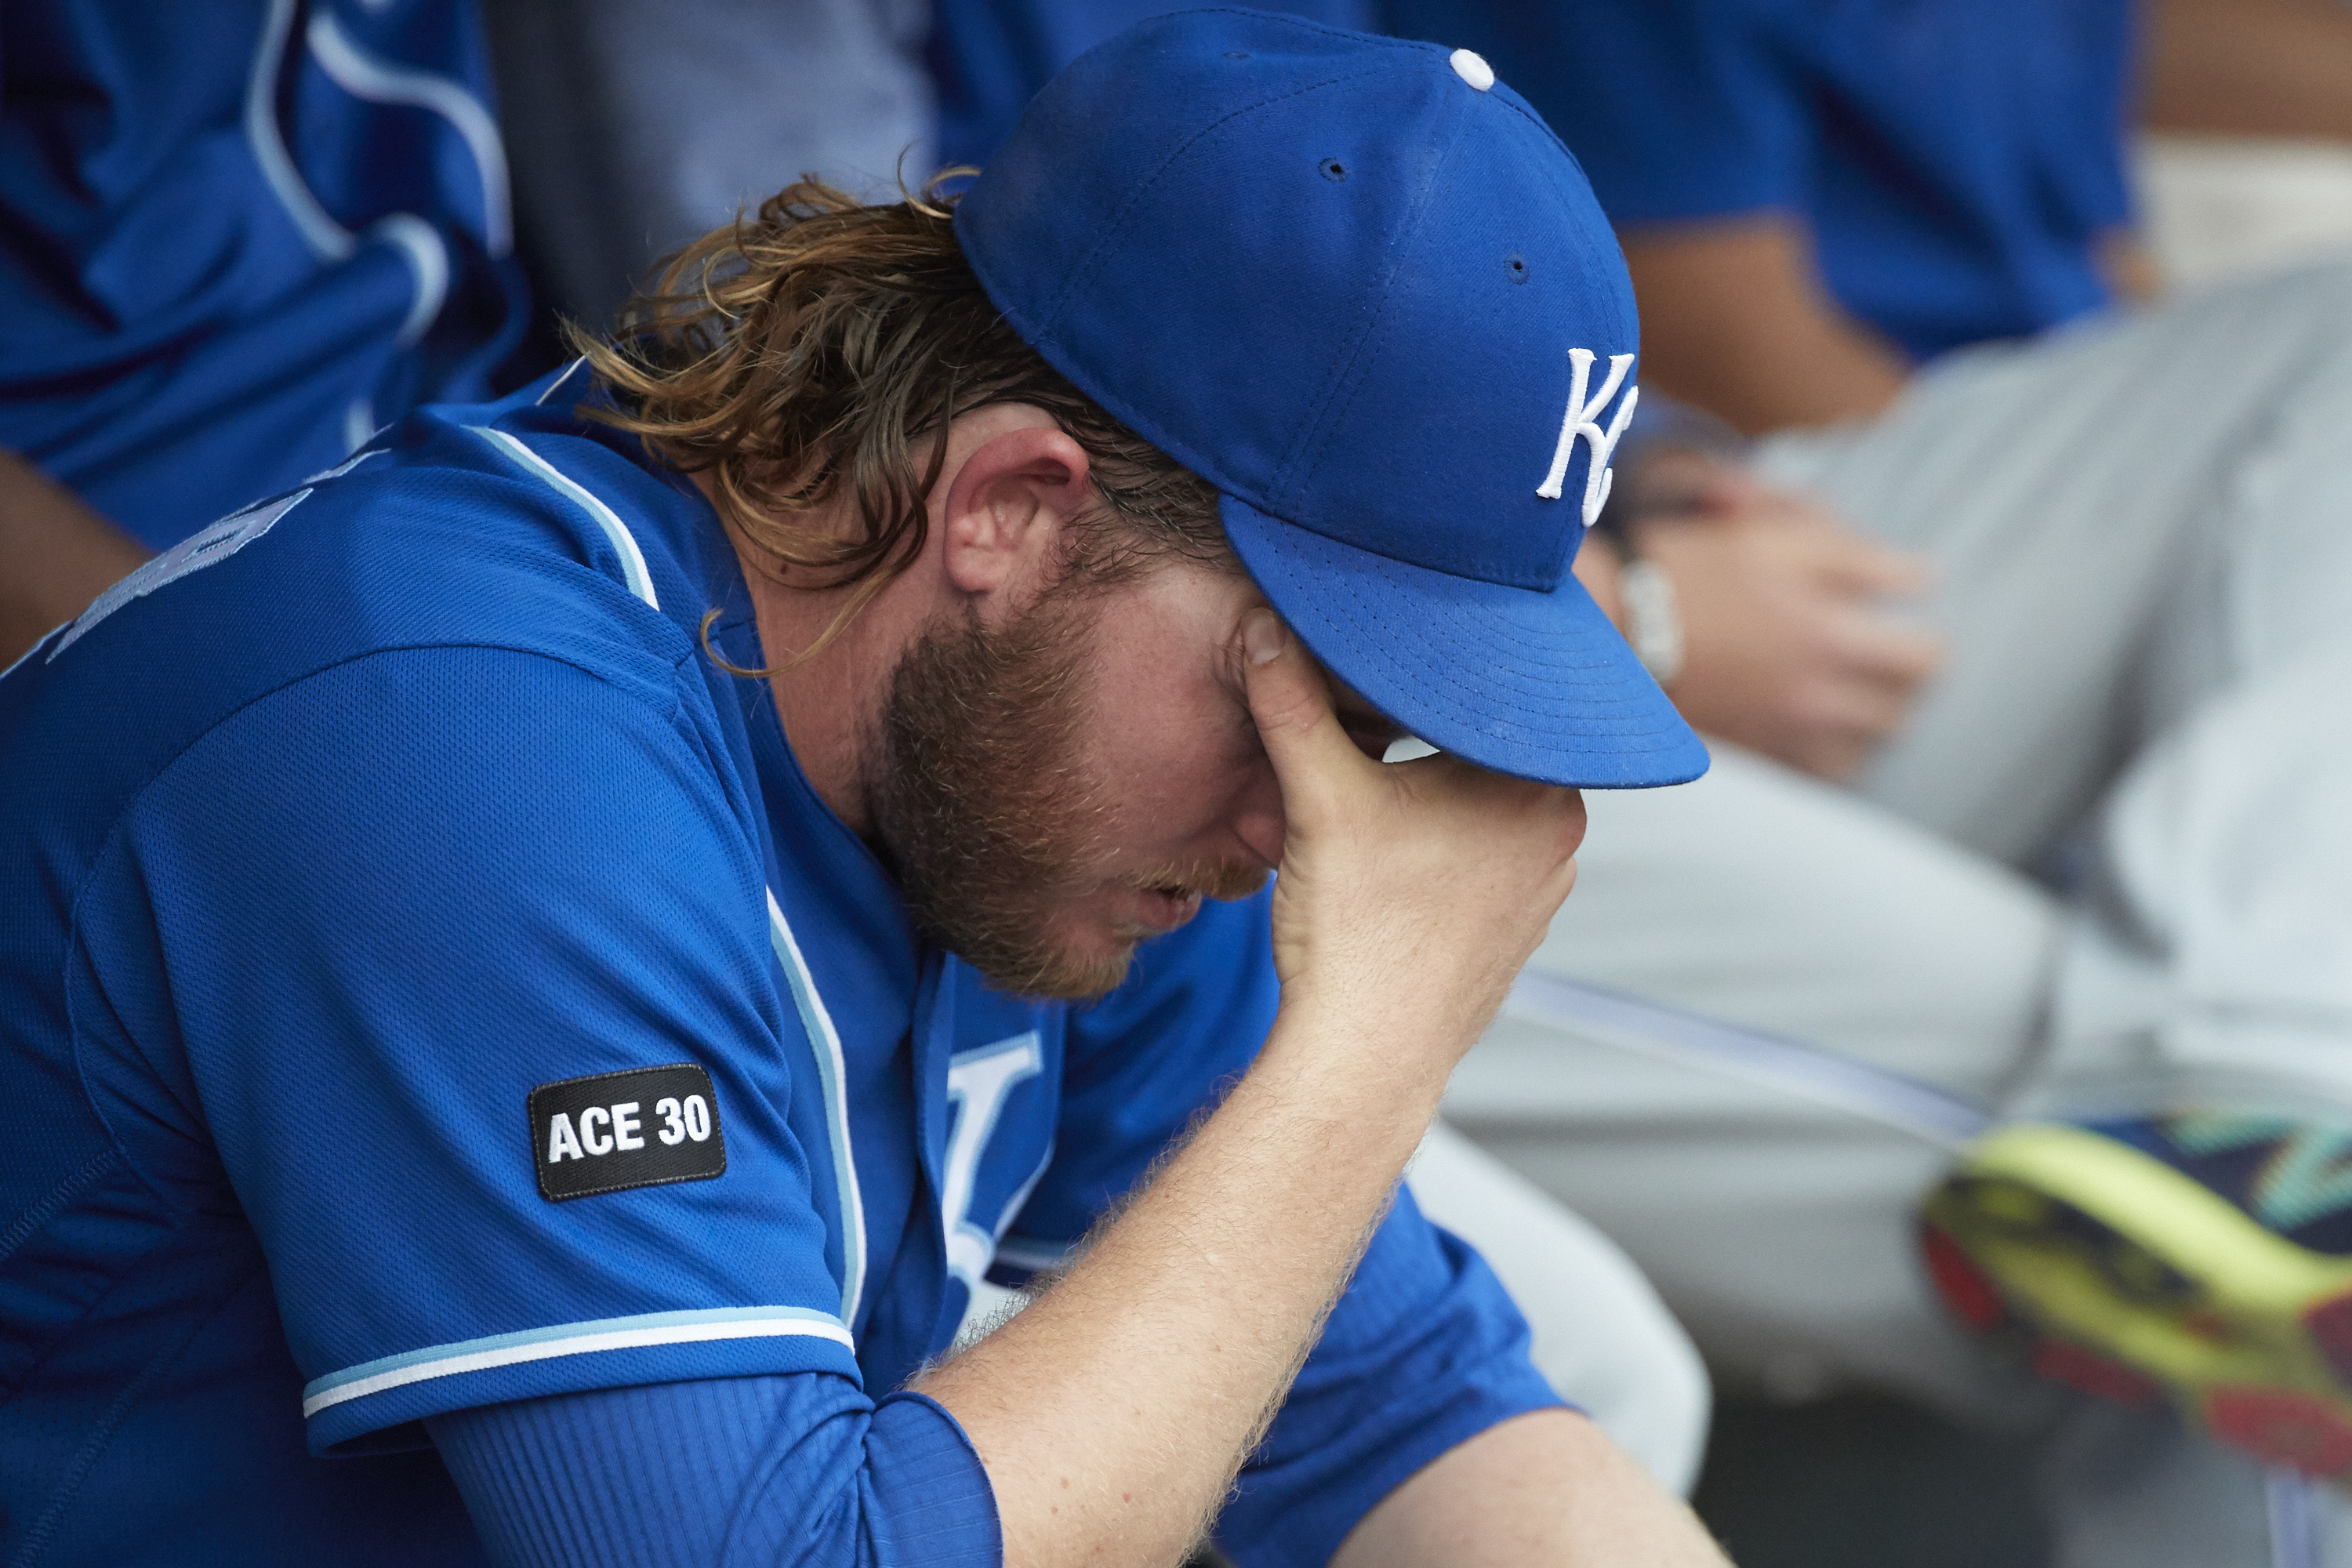 Sep 4, 2017; Detroit, MI, USA; Kansas City Royals relief pitcher Brandon Maurer (32) sits in dugout after being relieved in the ninth inning against the Detroit Tigers at Comerica Park. Mandatory Credit: Rick Osentoski-USA TODAY Sports